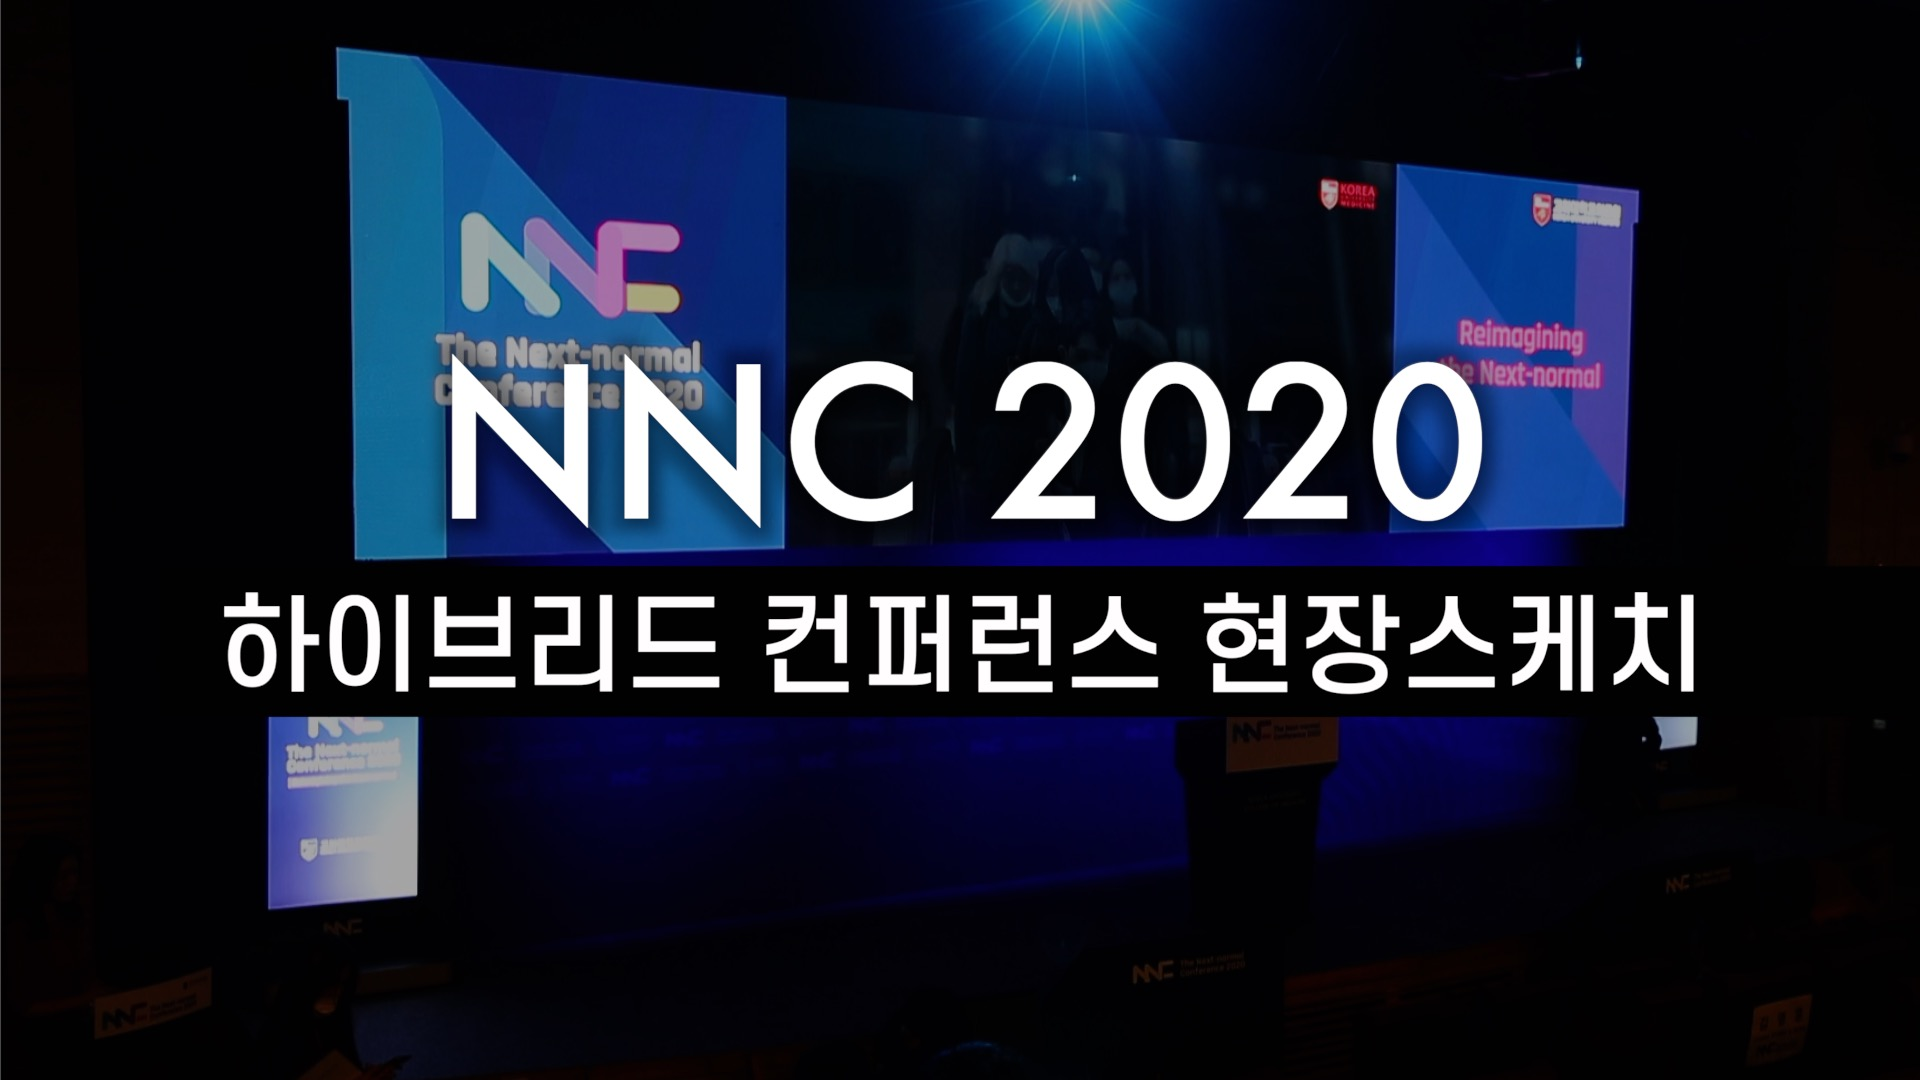 [NNC 2020] The Next Normal Conference 2020 현장 스케치